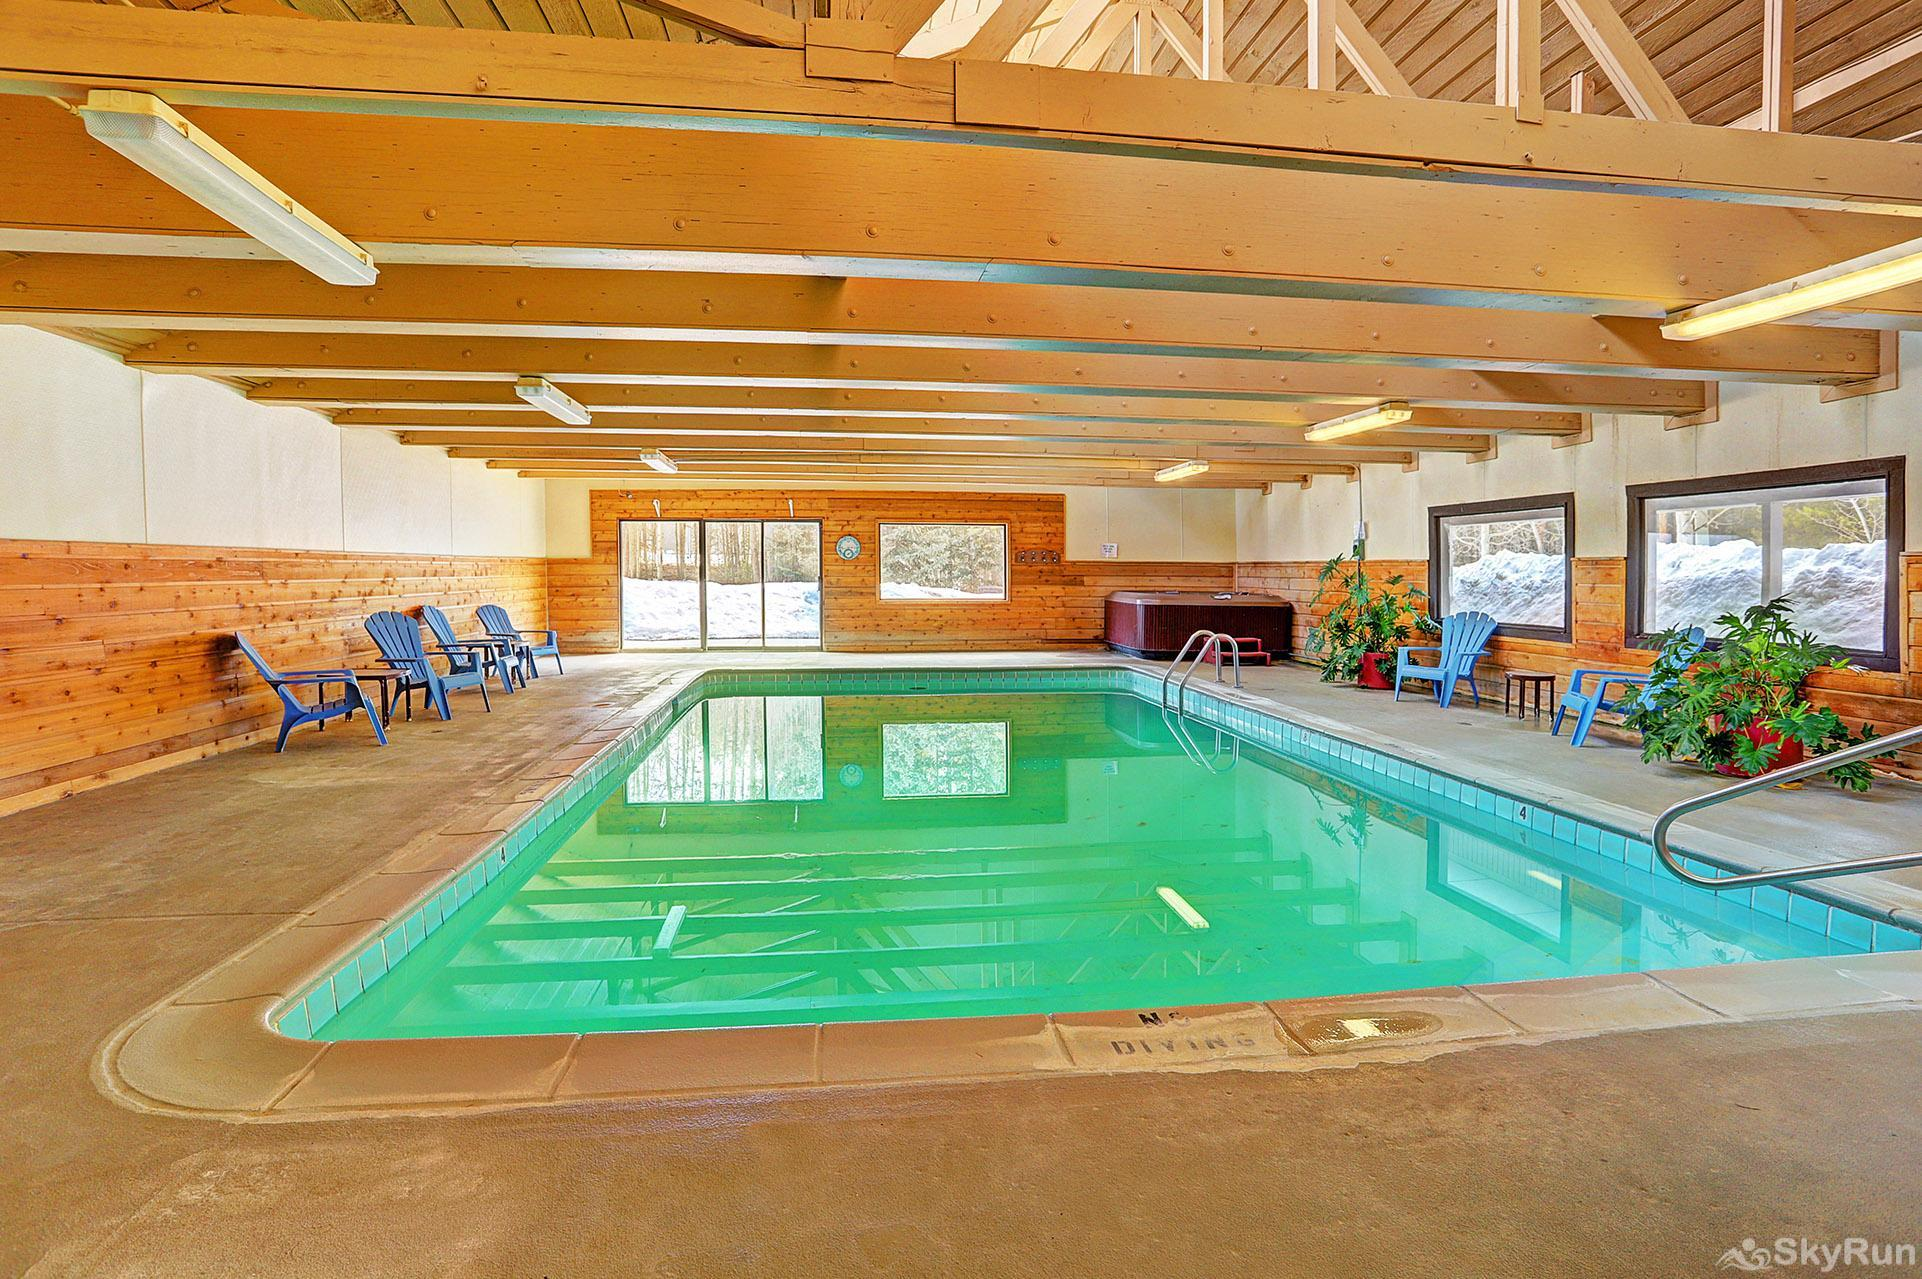 Ski and Racquet Club B106 Community pool and hot tub in the clubhouse